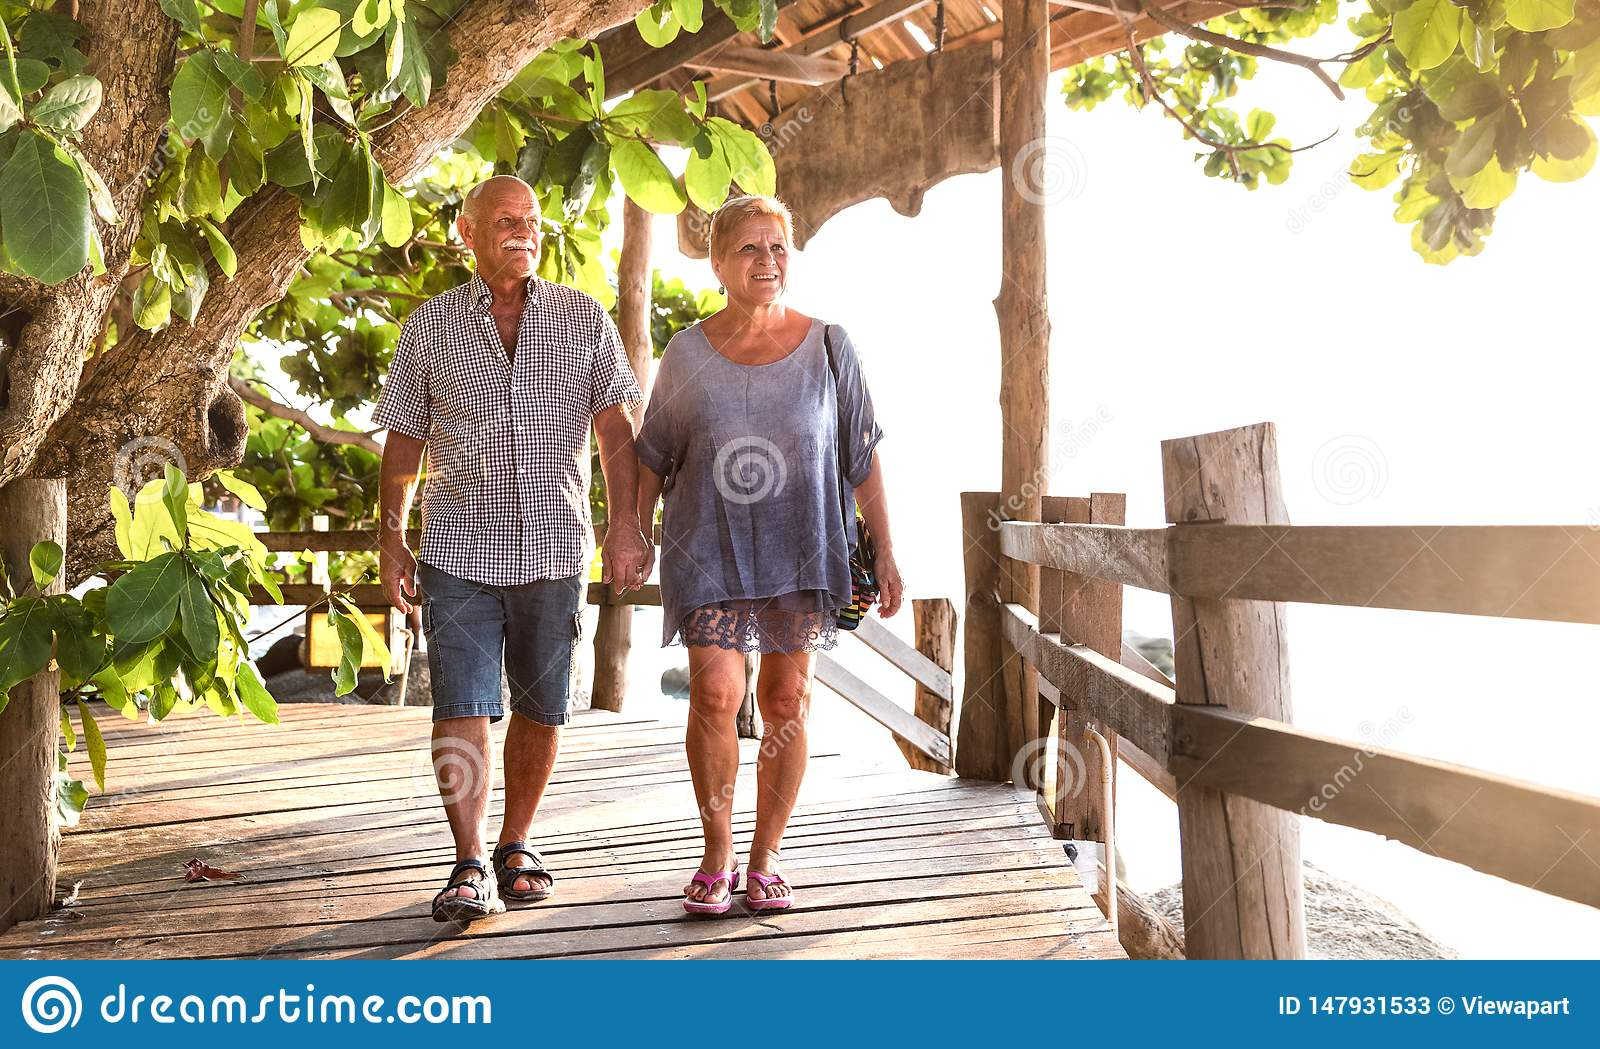 Happy senior couple walking holding hand at Koh Phangan beach promenade - Active elderly and travel lifestyle concept